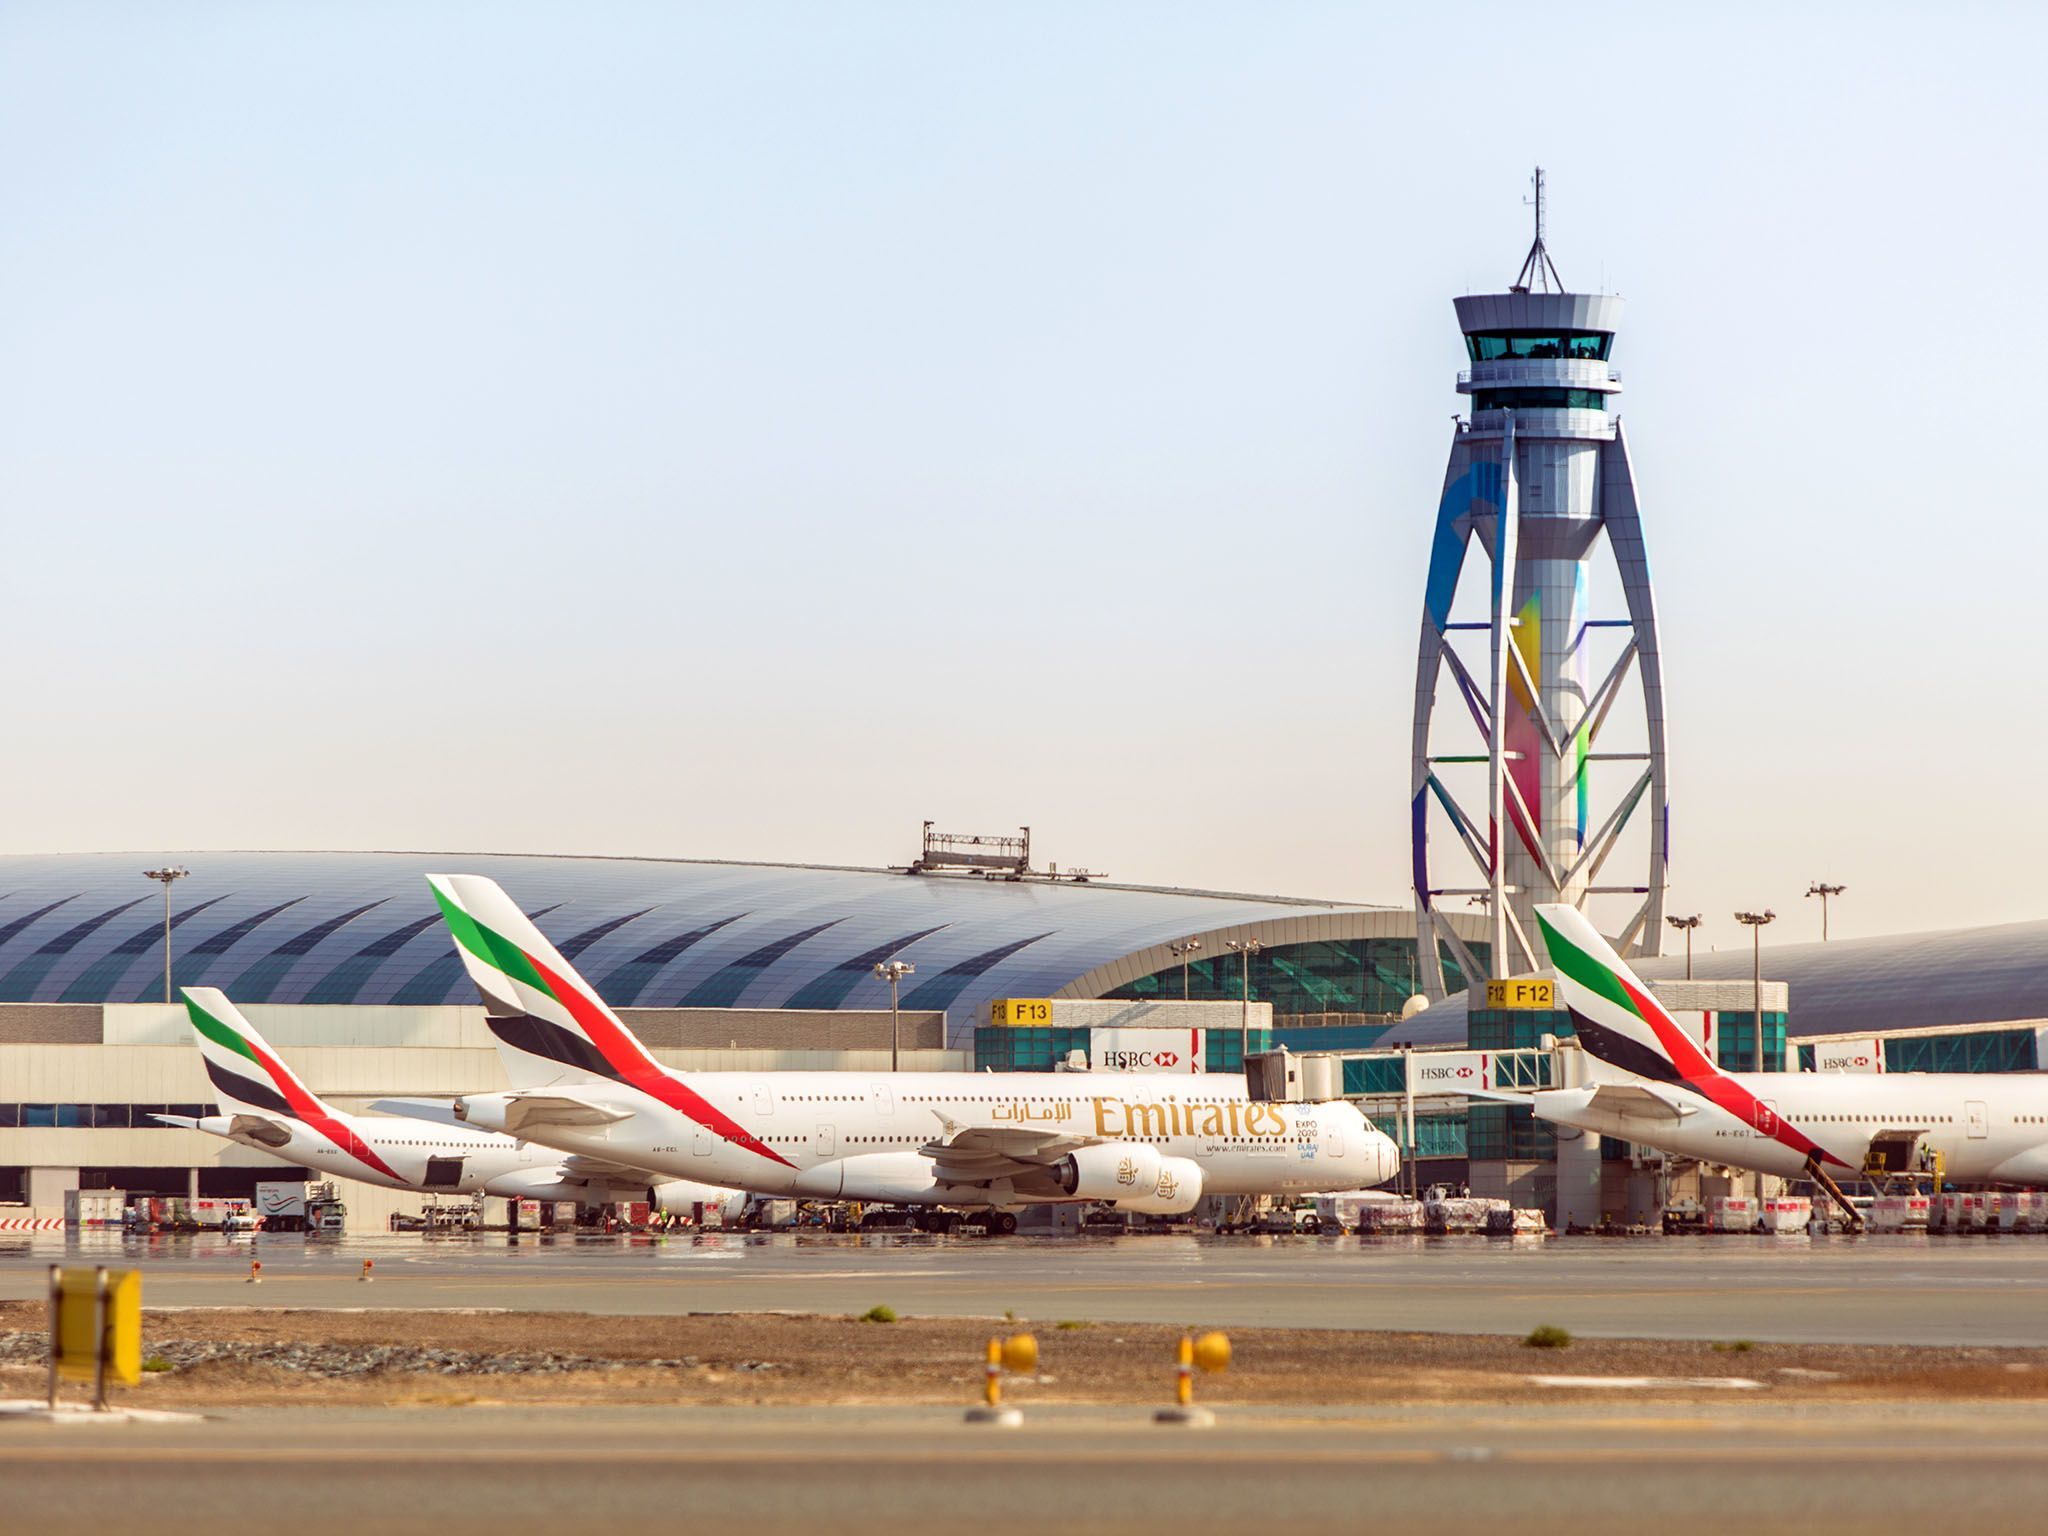 Dubai: The air traffic control tower. This image is from Ultimate Airport Dubai. [Photo of the day - 十月 2015]